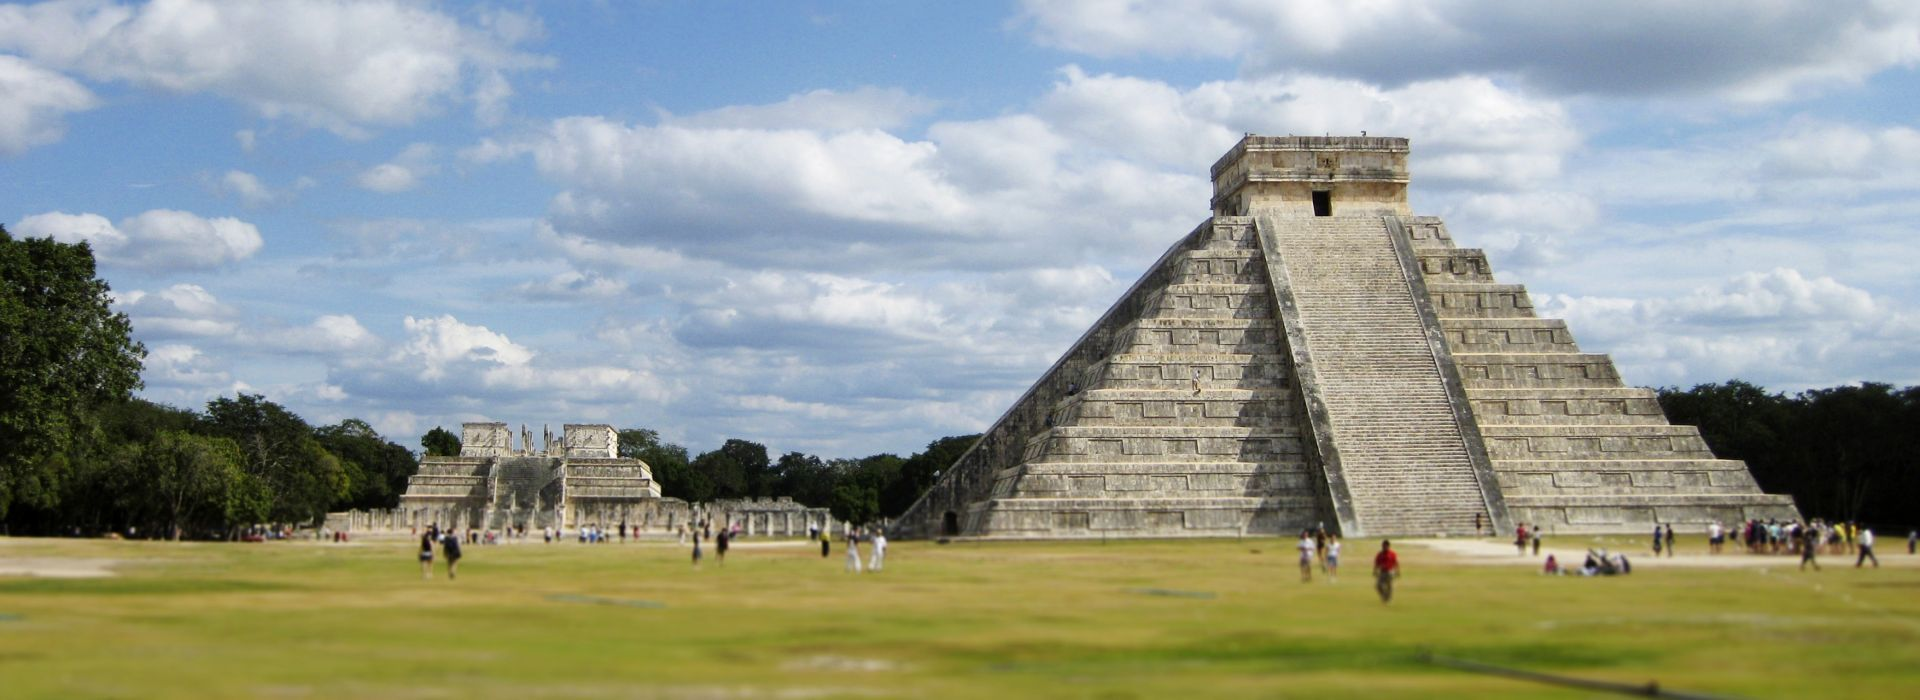 Adventure Tours in Mexico City